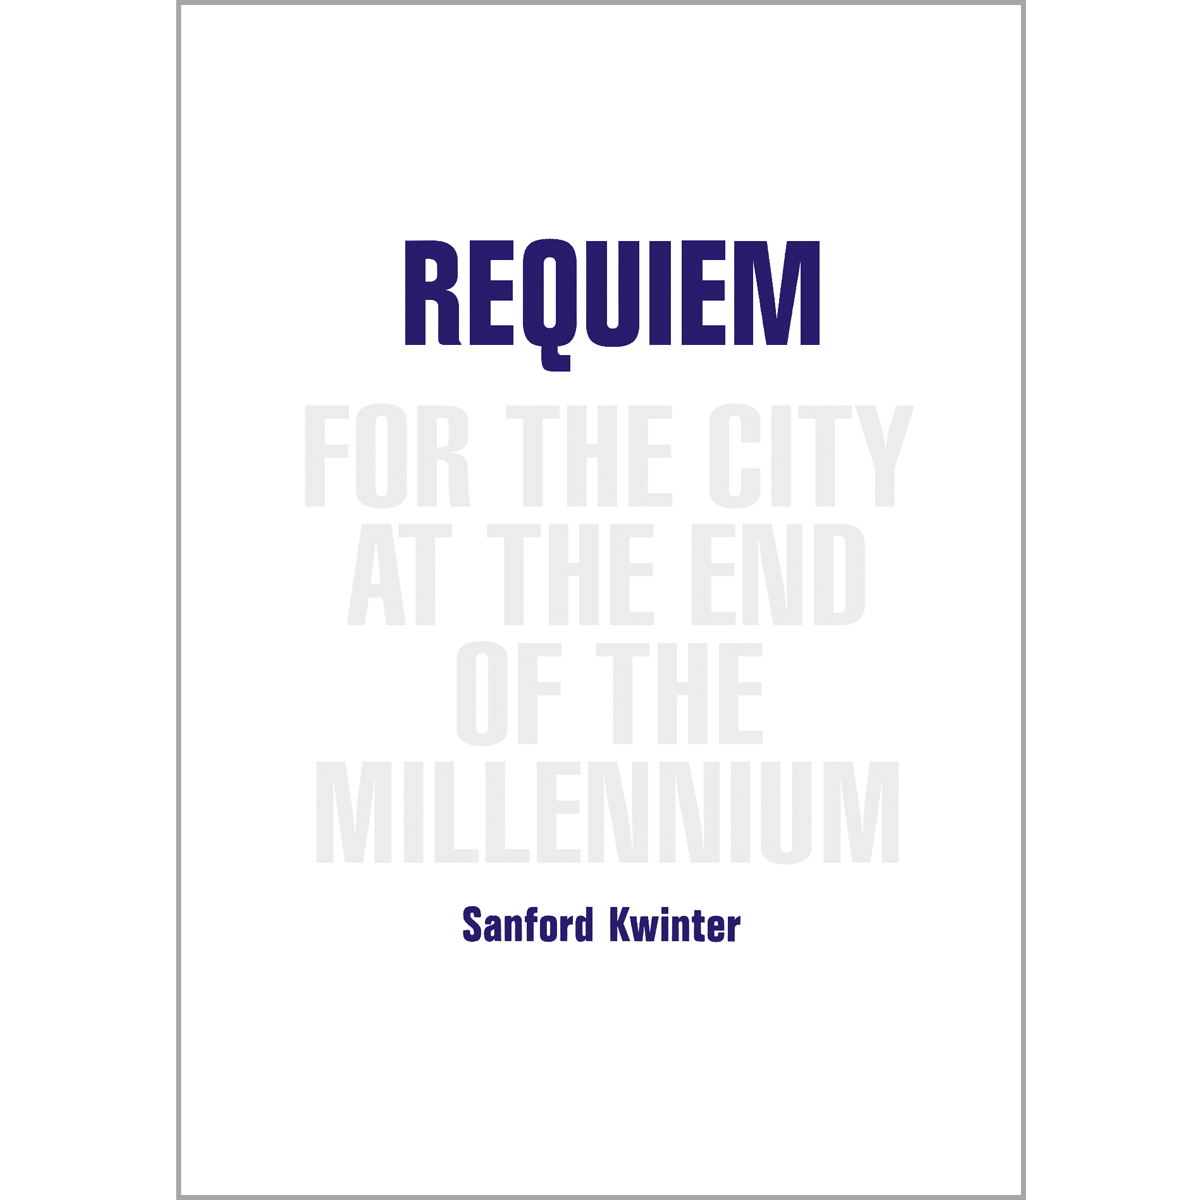 Requiem for the City  at the End of the Millennium